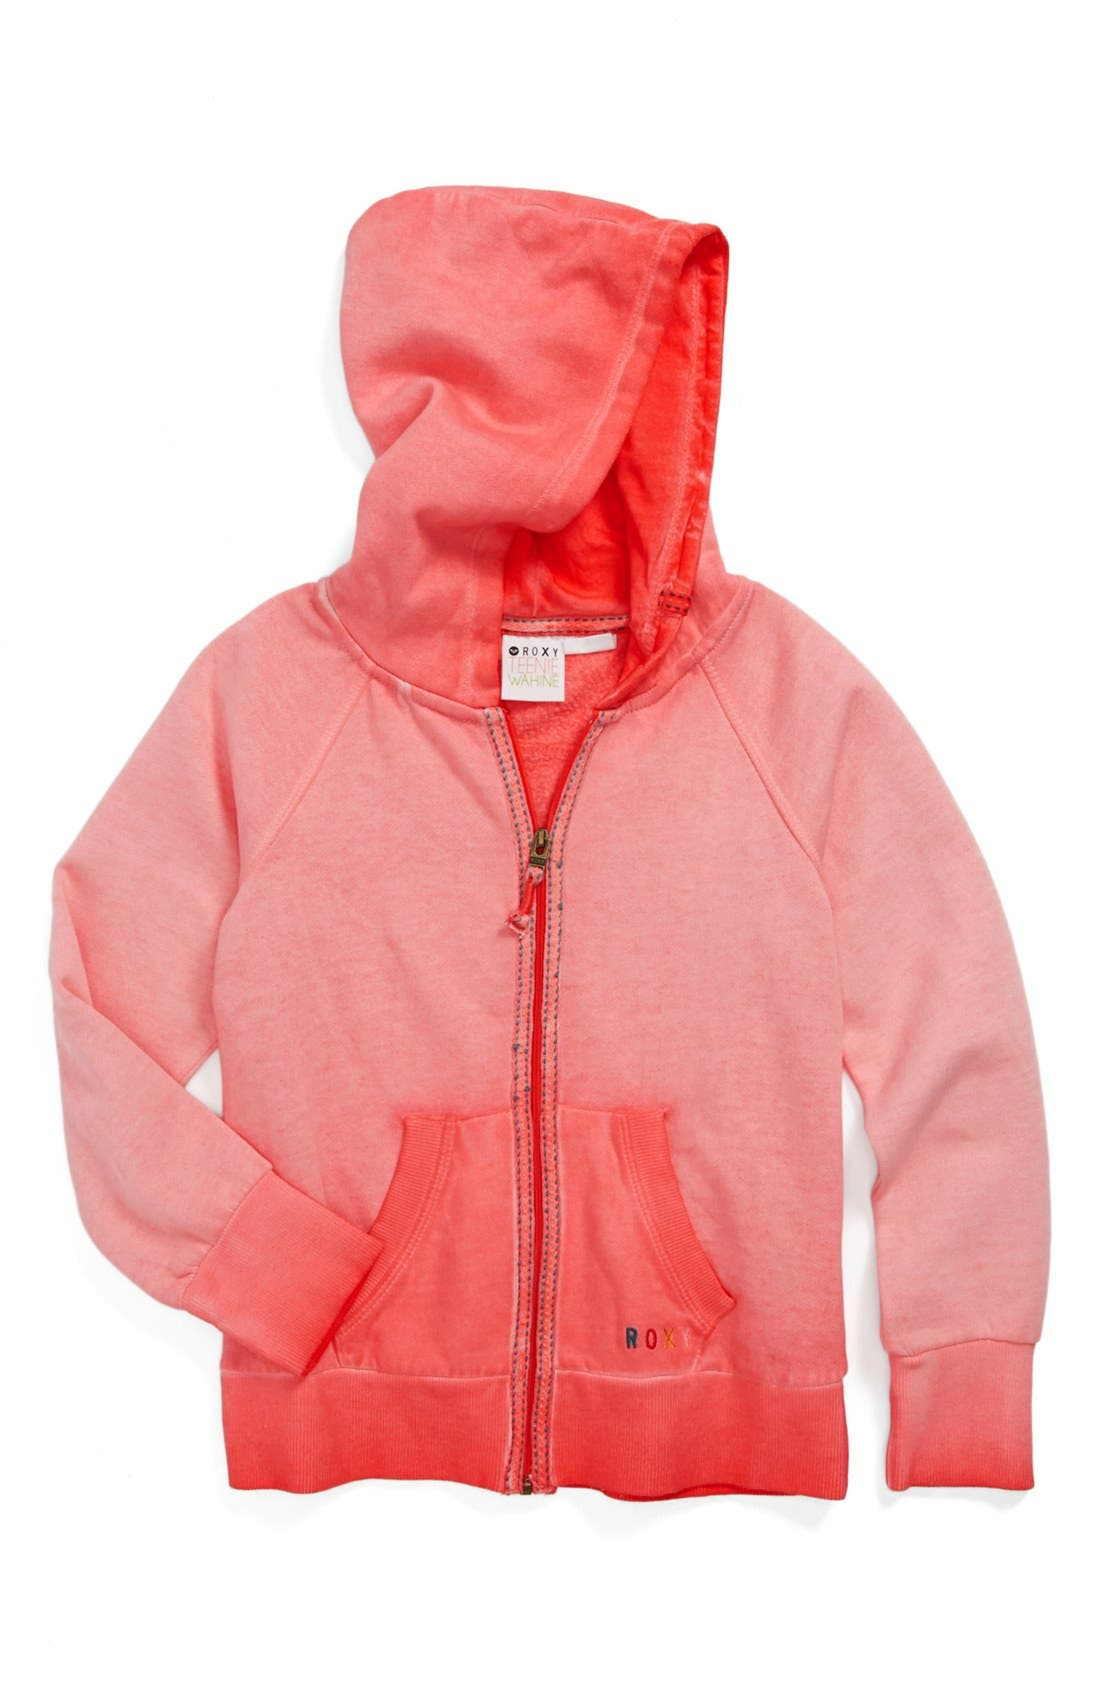 Alternate Image 1 Selected - Roxy 'Sunbleached' Hoodie (Little Girls & Big Girls)